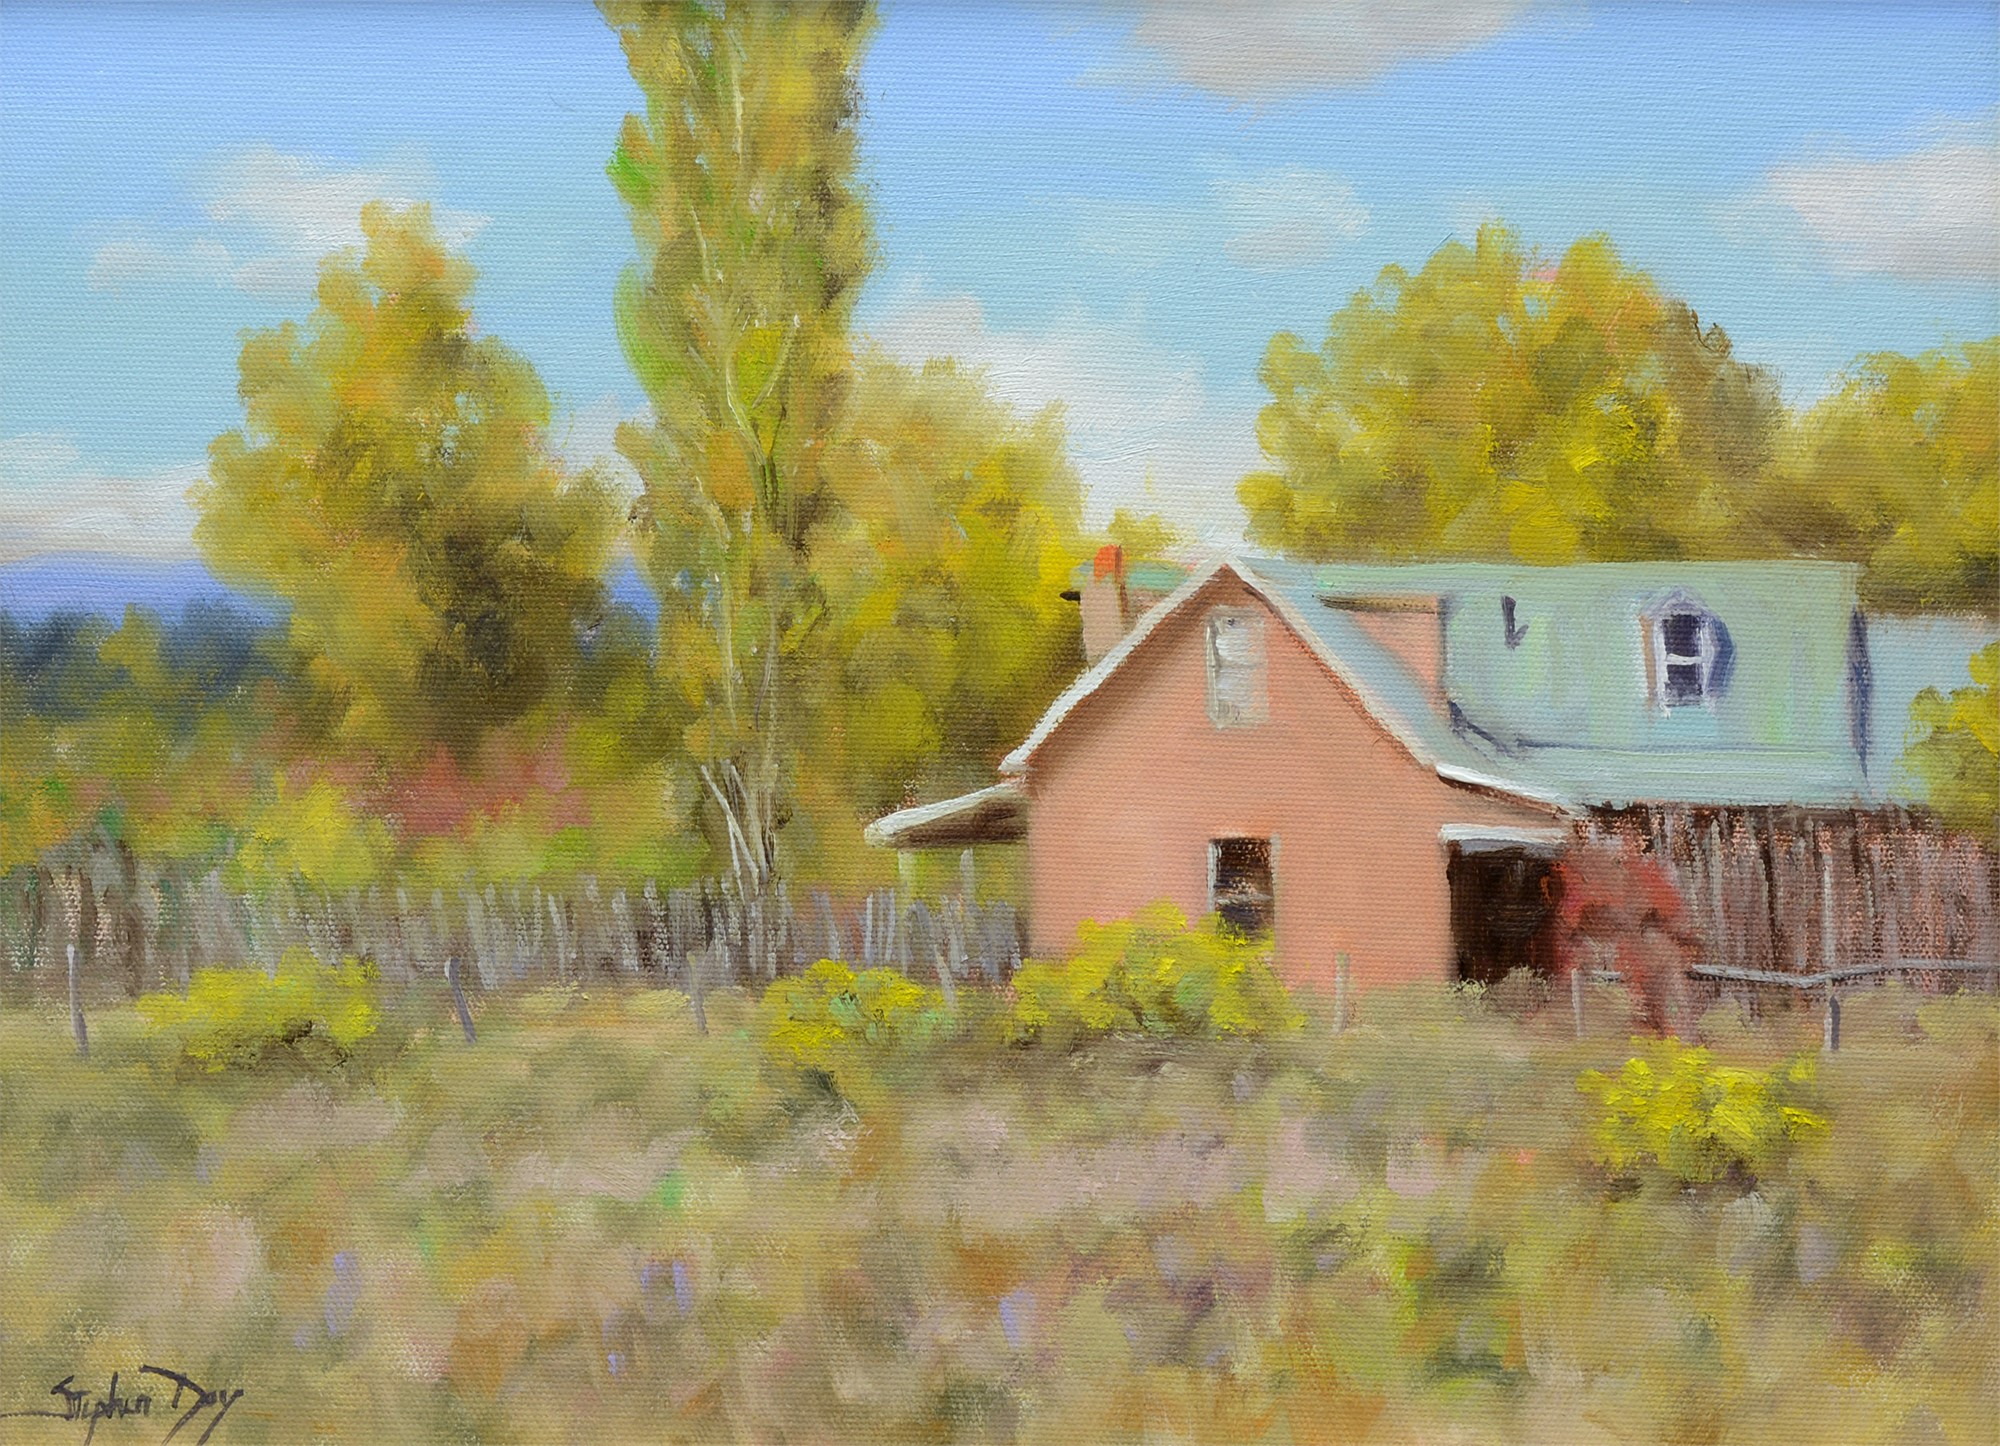 Taos Fall by Stephen Day